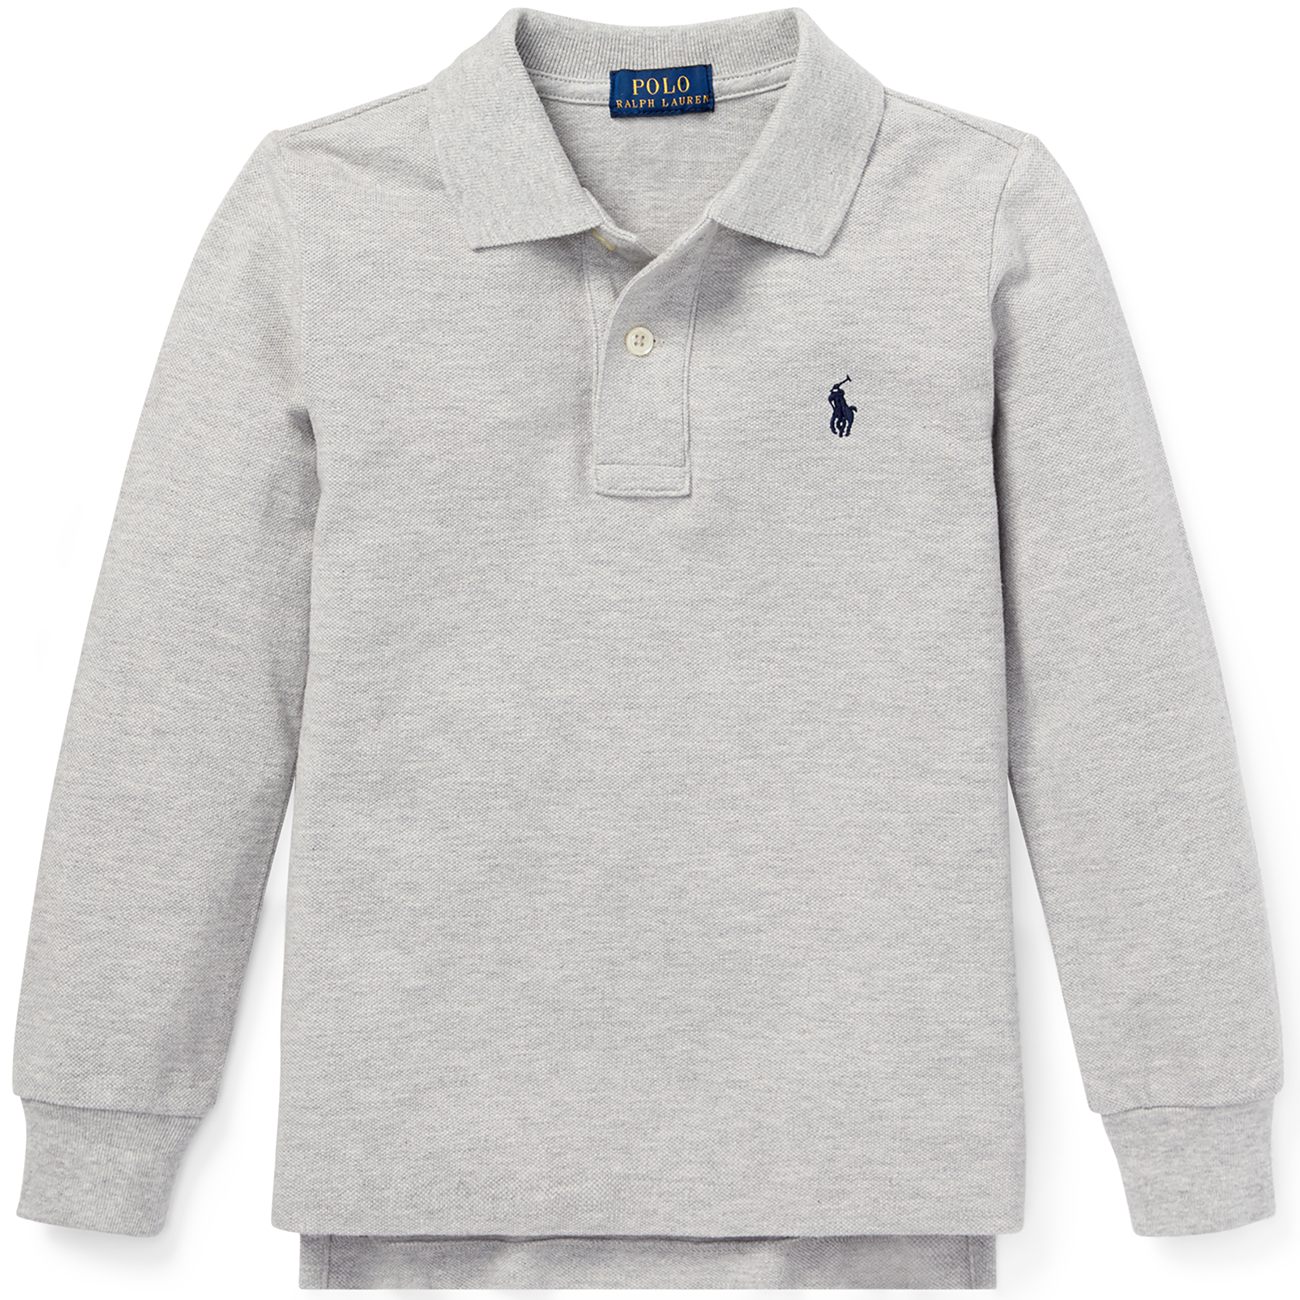 ca4521a6 Polo Ralph Lauren Boy Long Sleeve Polo Grey Heather